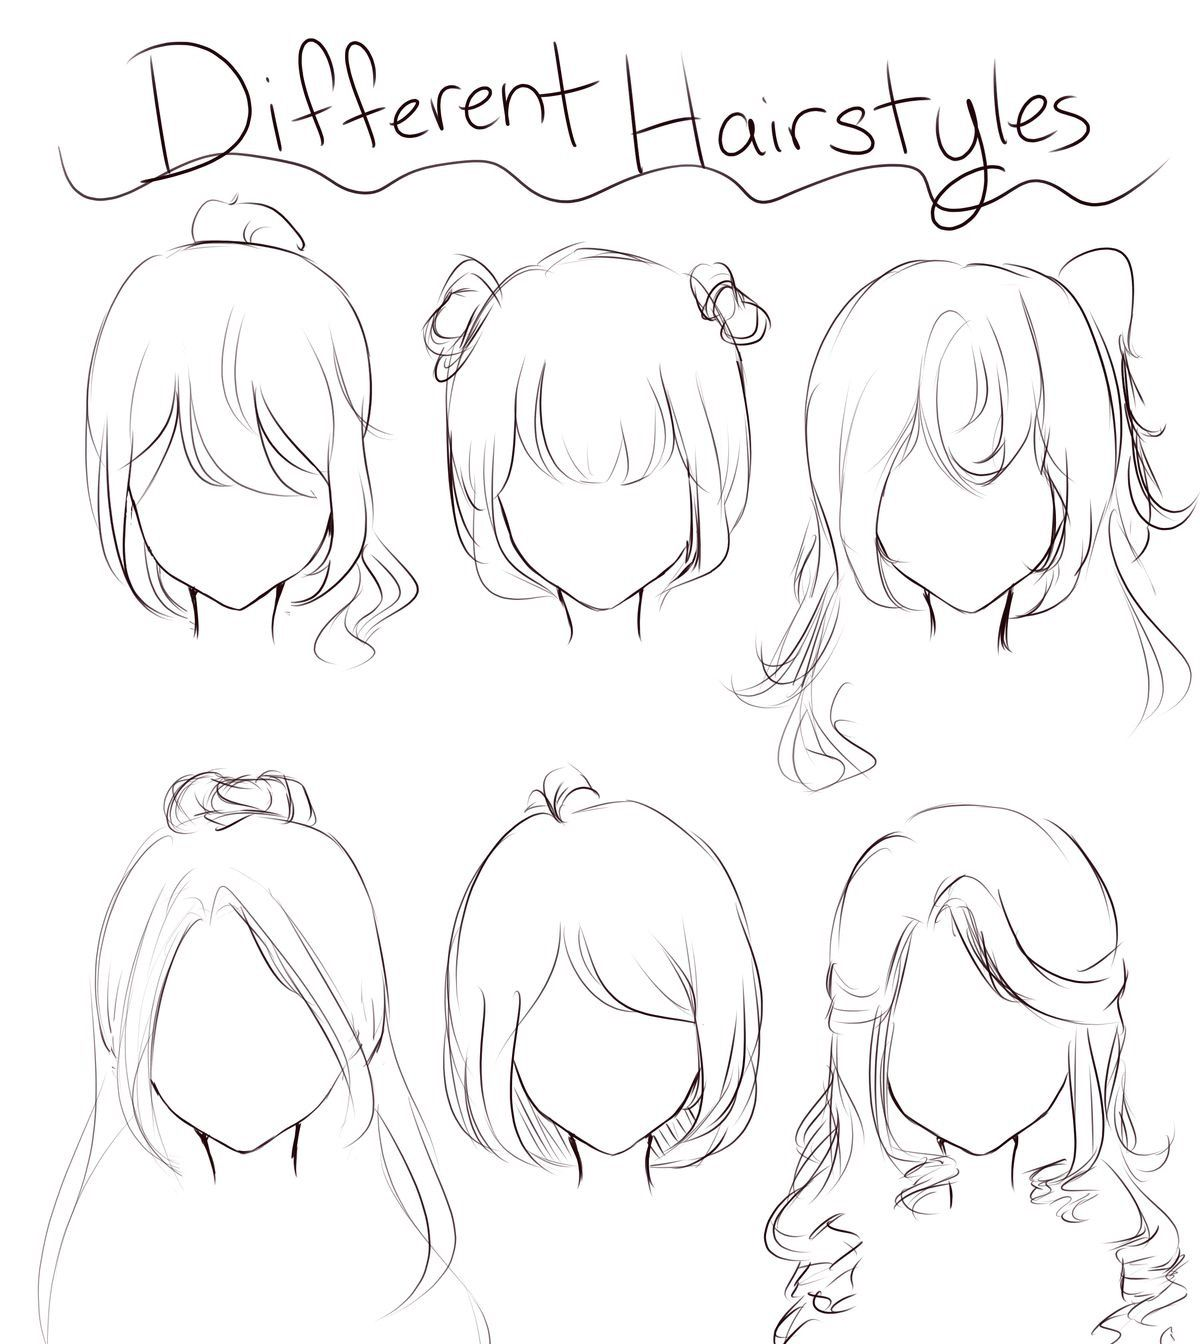 Pin By Rinneyuuki On Learn In 2020 Anime Drawings Sketches Anime Drawings Tutorials Hair Sketch